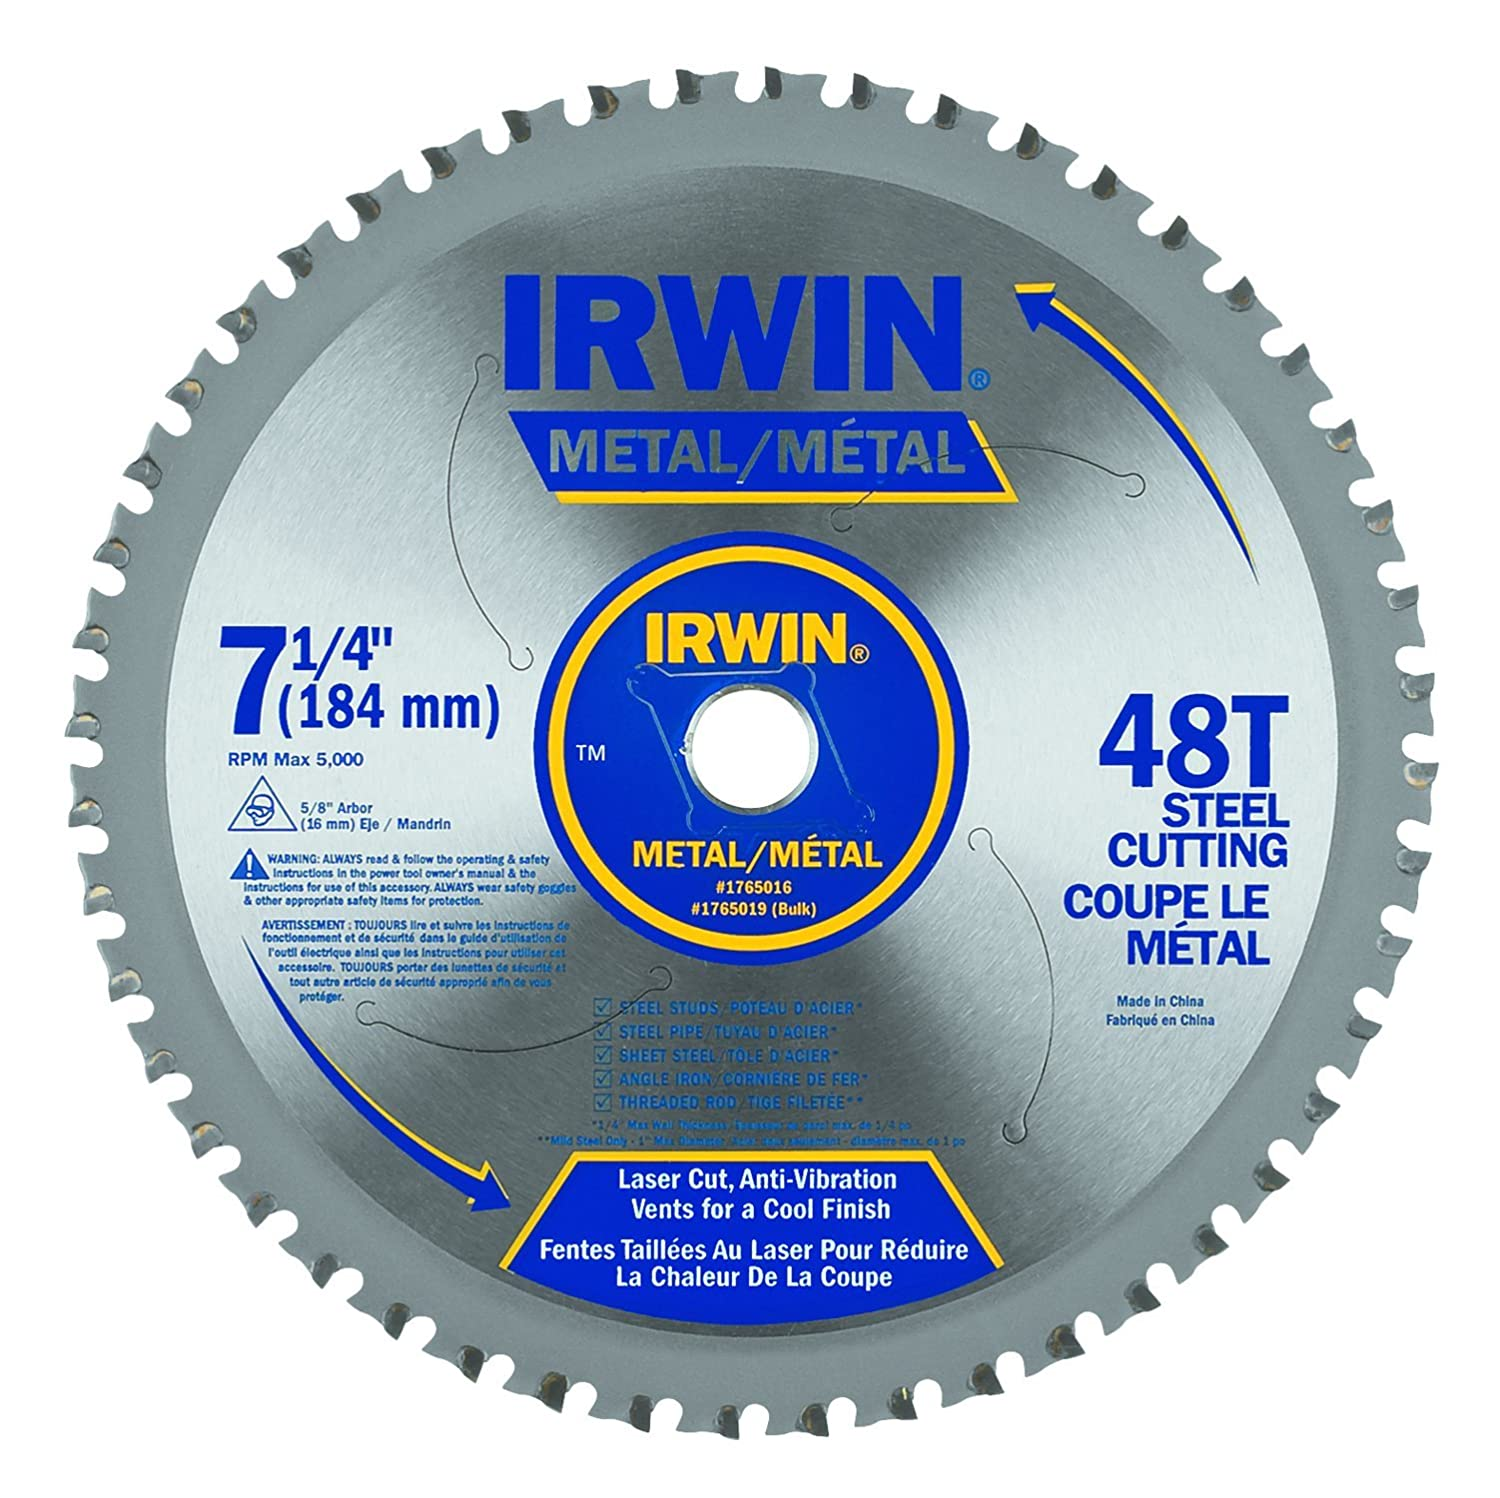 Irwin Tools Metal Cutting Circular Saw Blade 7 1 4 Inch